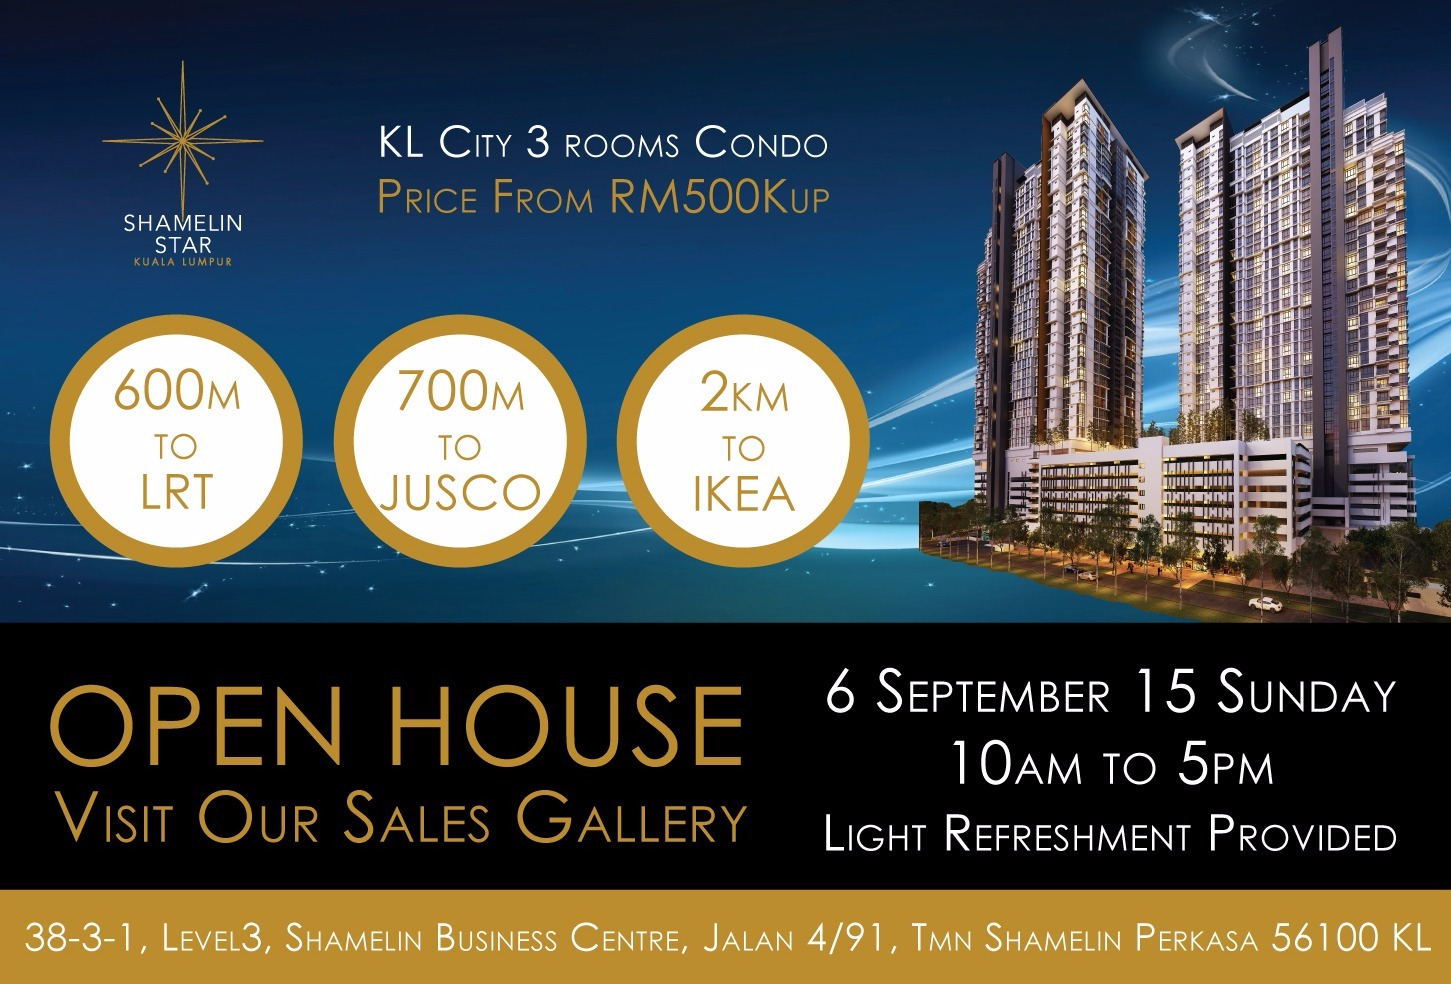 Vincent Kl Property Ecg Affirm Properties Shamelin Star Open House